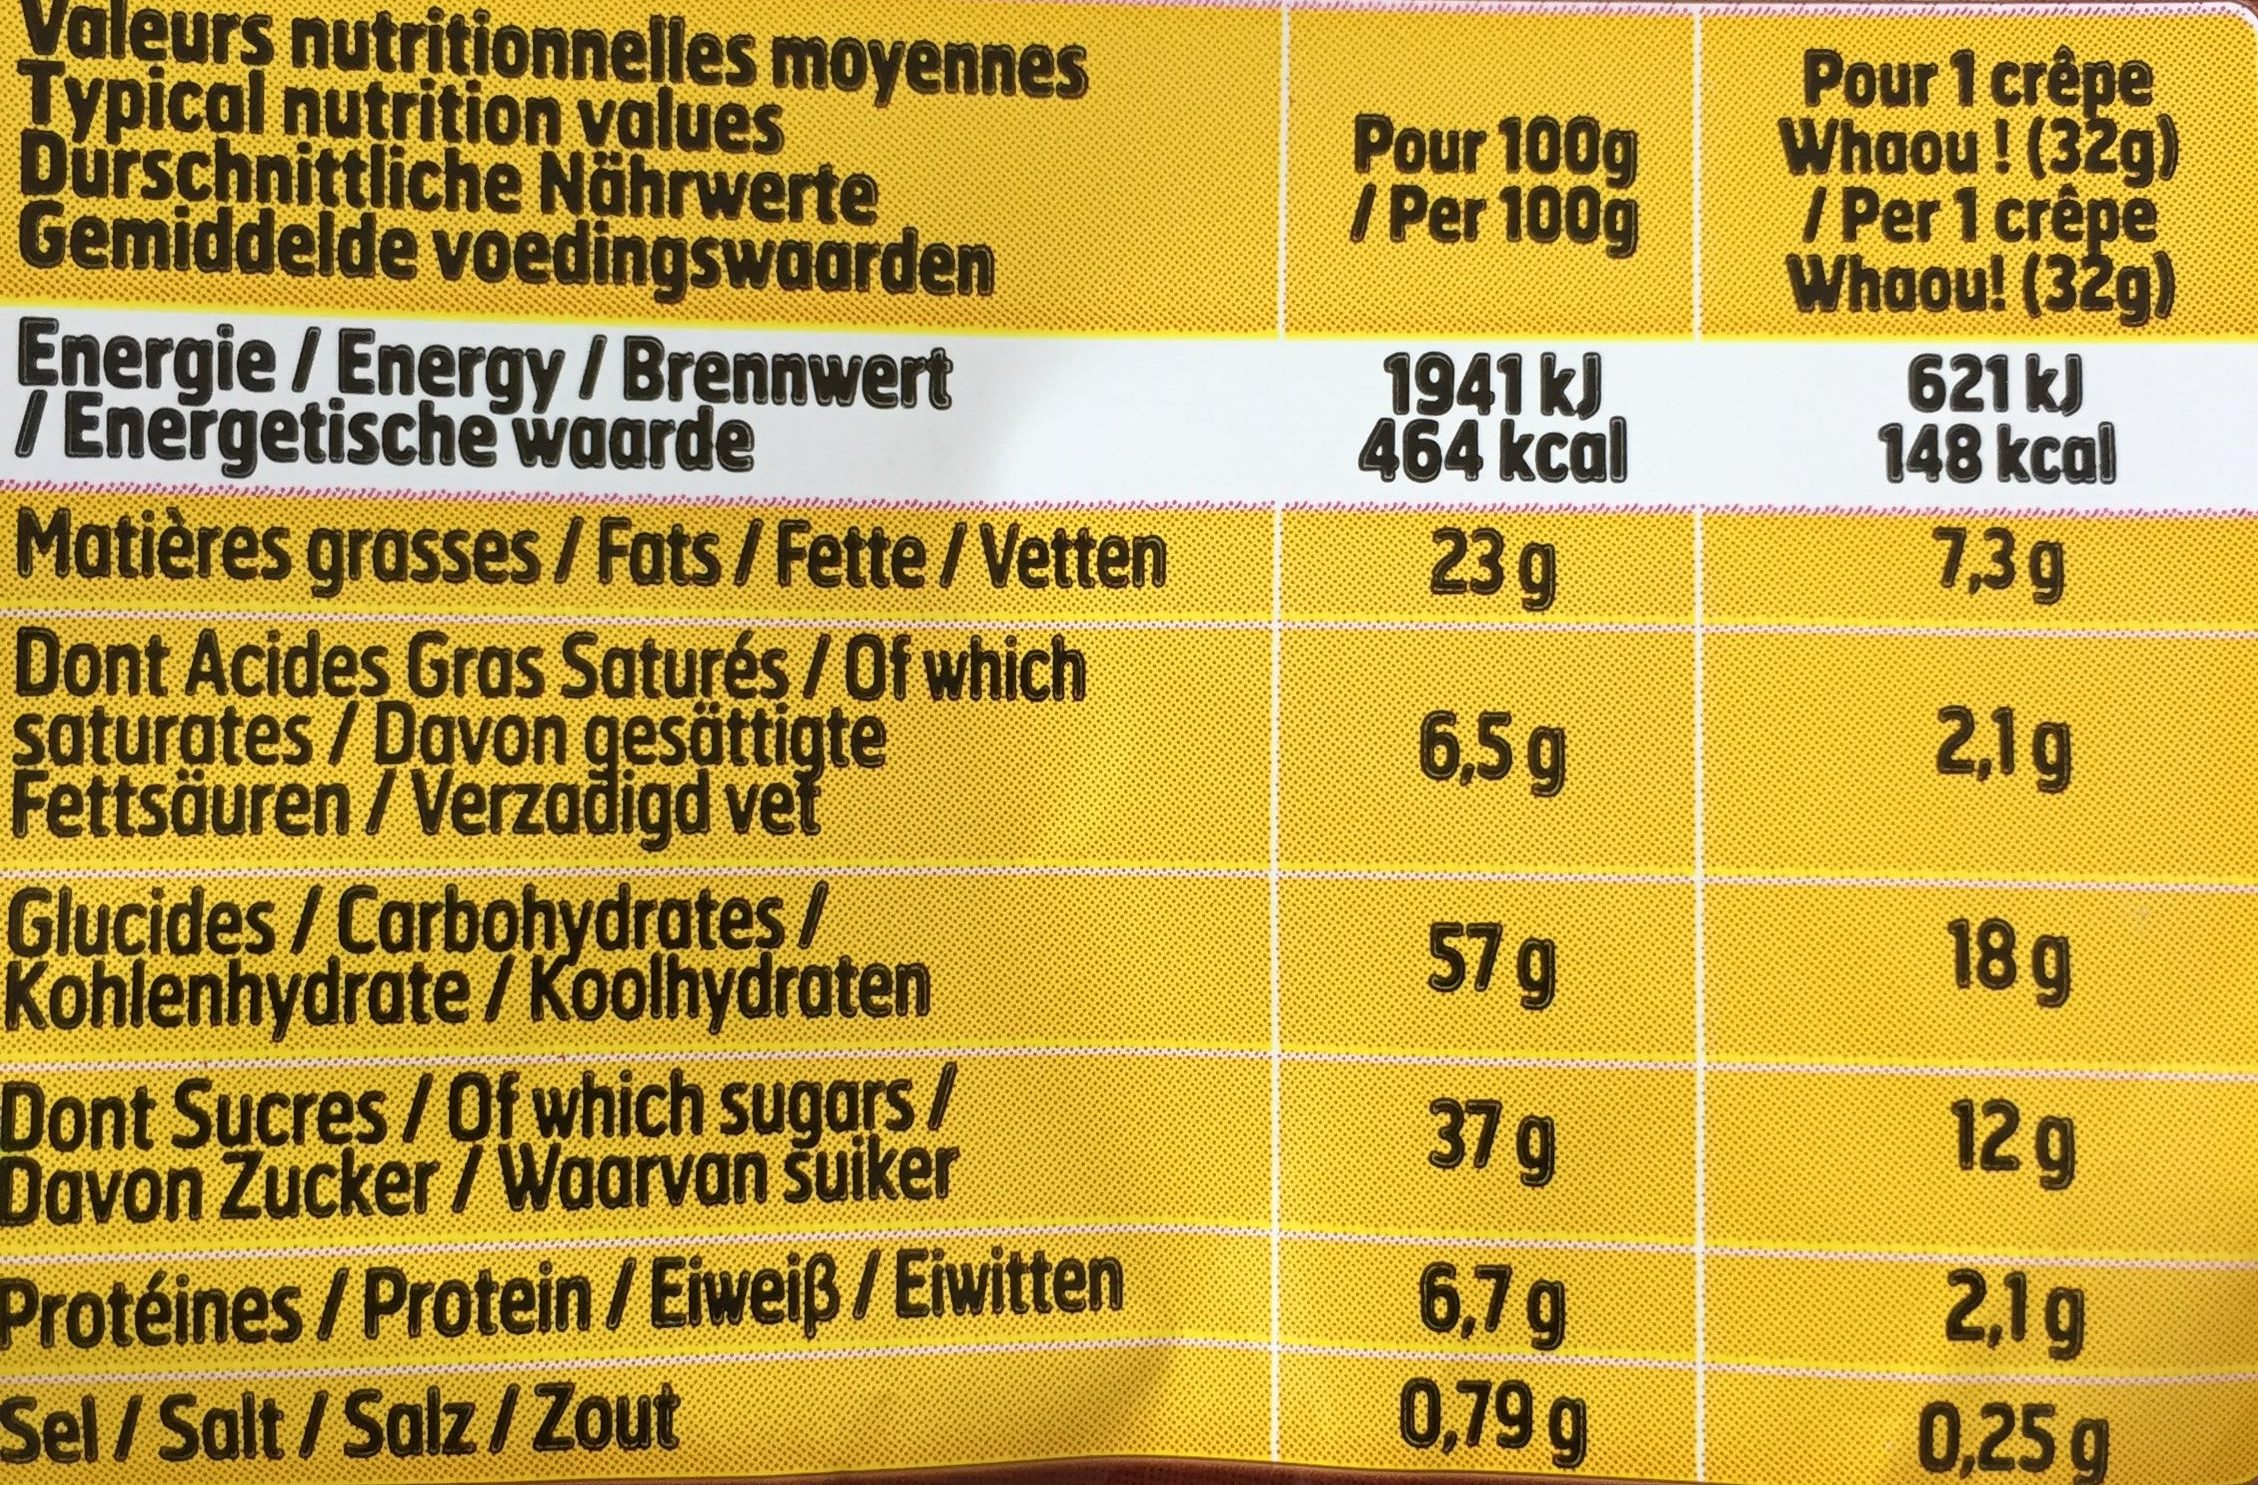 15 Crêpes Chocolat WHAOU - Nutrition facts